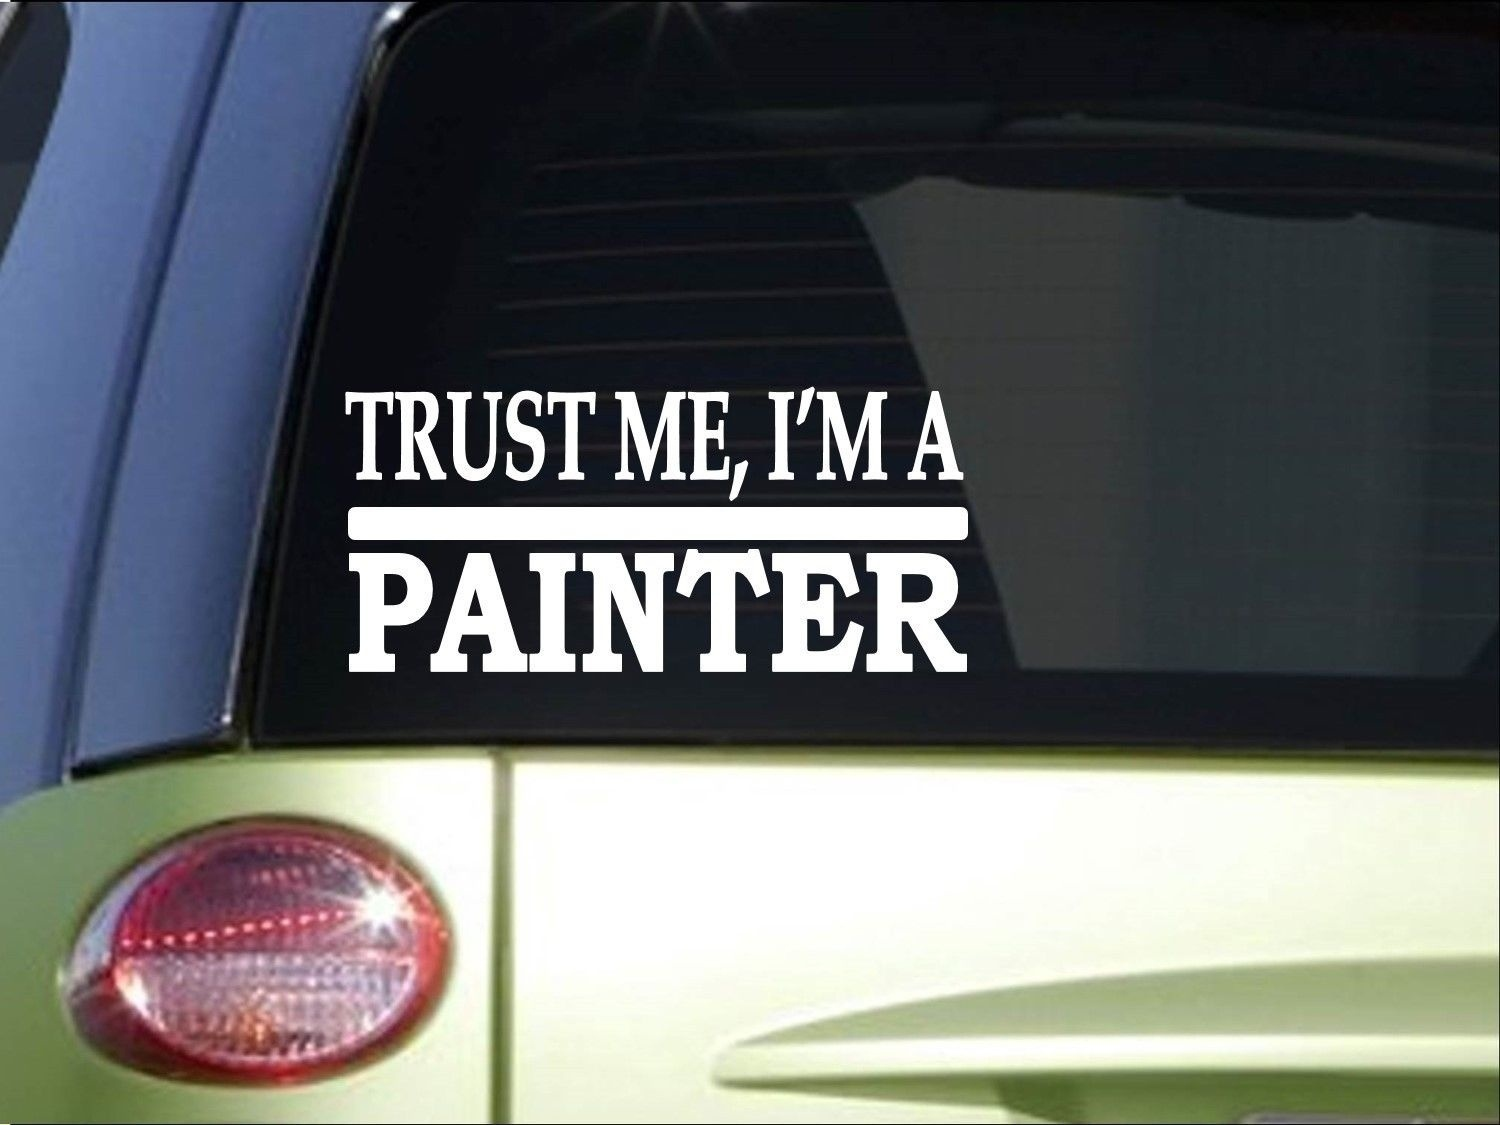 Trust Me Painter  8 Inch Sticker Decal Paint Brush Roller Painting Tape Computer Sticker